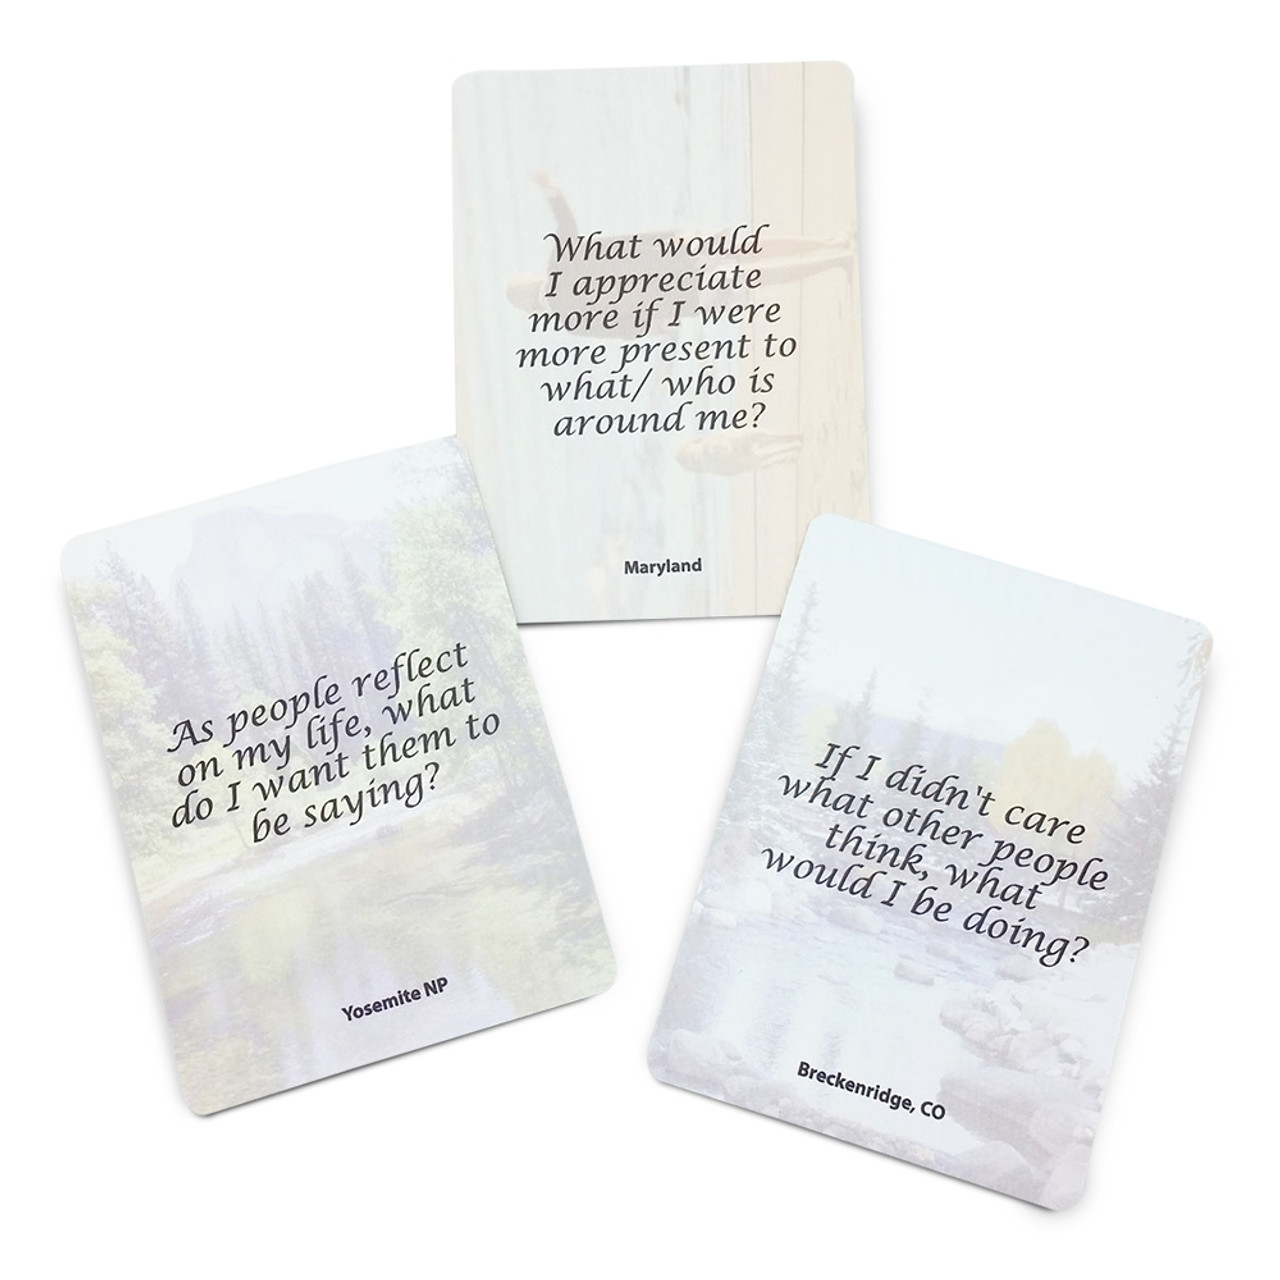 View-Changer Cards; quote side of cards